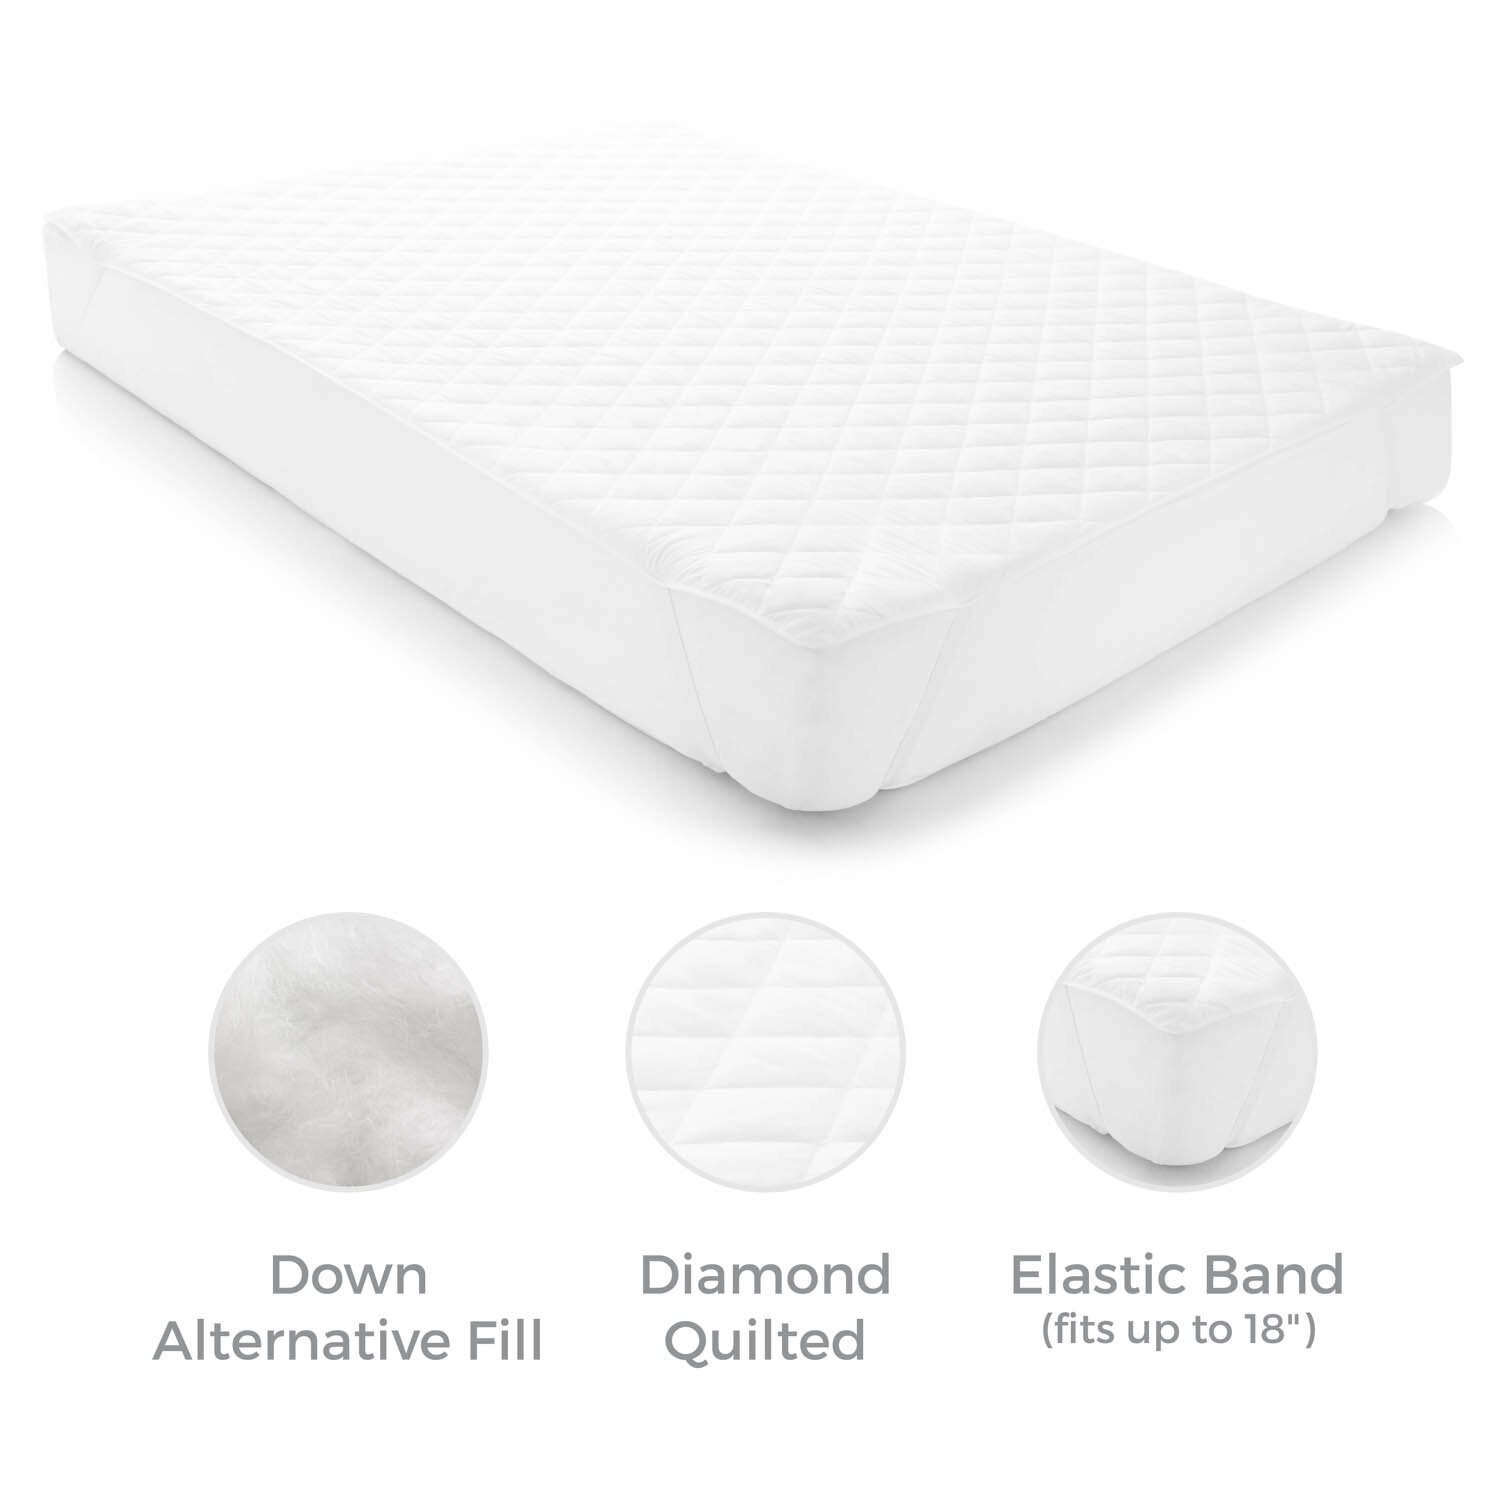 Linenspa Quilted Microfiber Mattress Pad amp Reviews Wayfair : Linenspa Quilted Microfiber Mattress Pad LS8512PA from www.wayfair.com size 1500 x 1500 jpeg 73kB